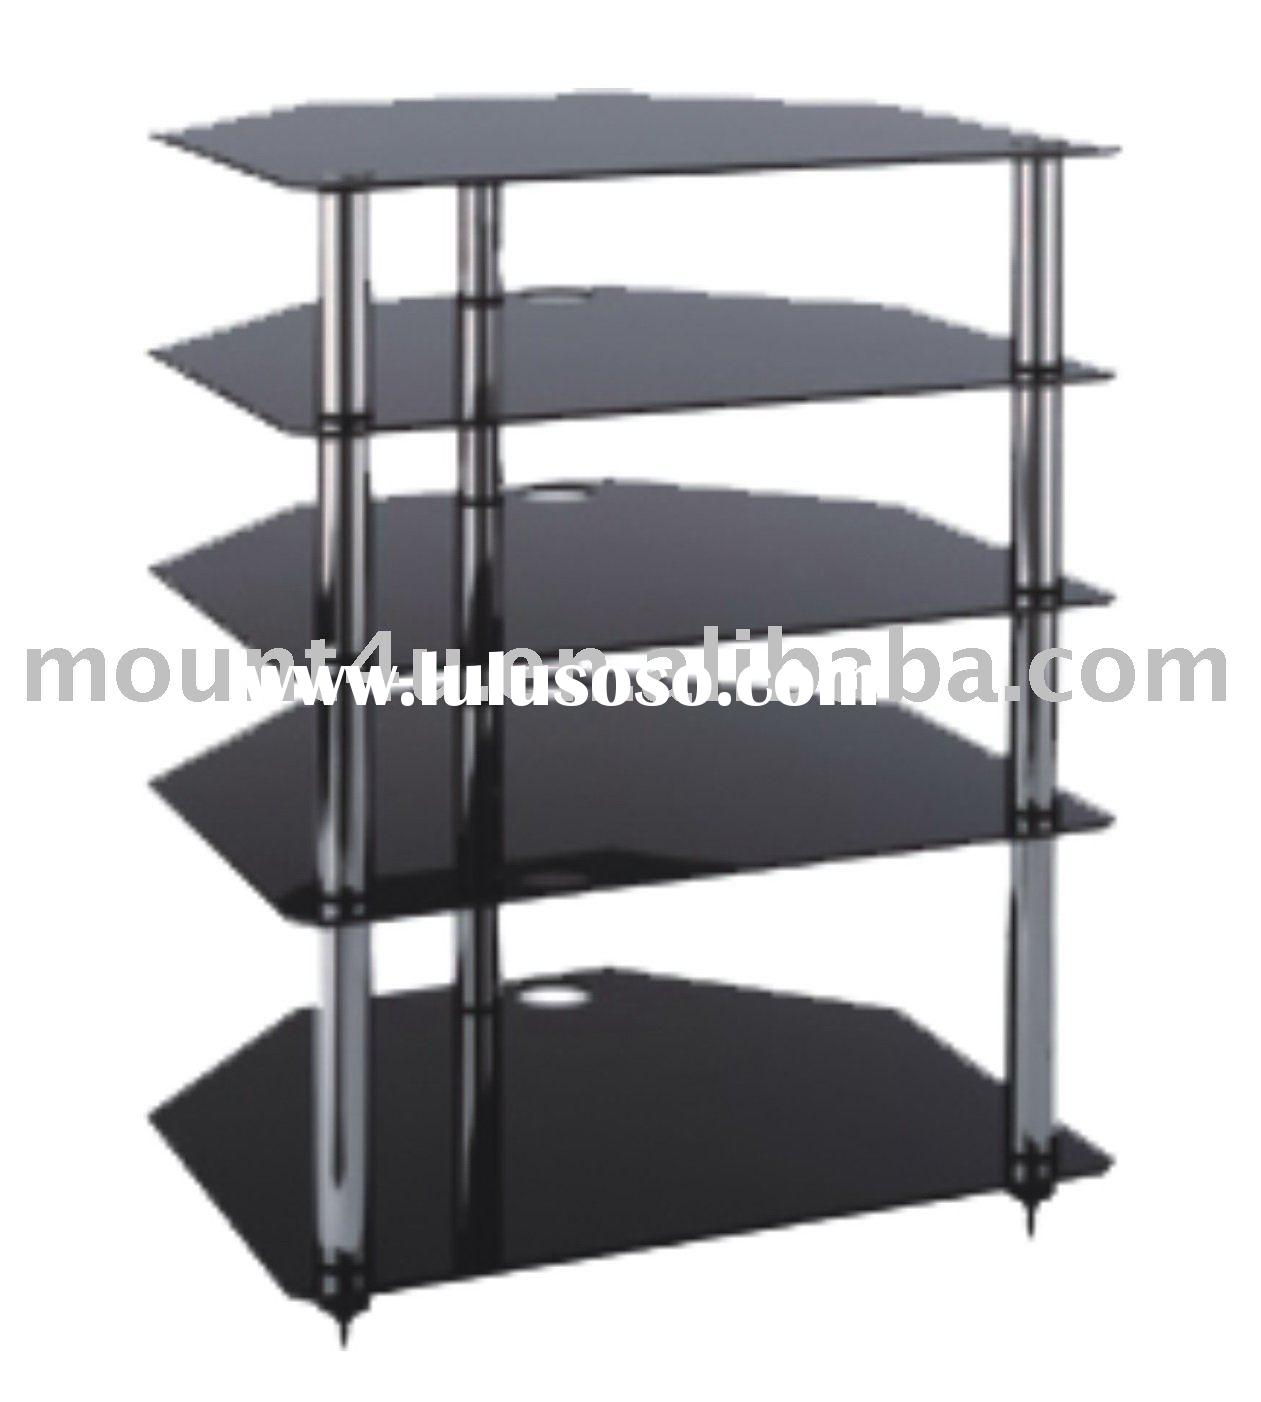 Great TV Stands for Flat Screens 1261 x 1402 · 84 kB · jpeg